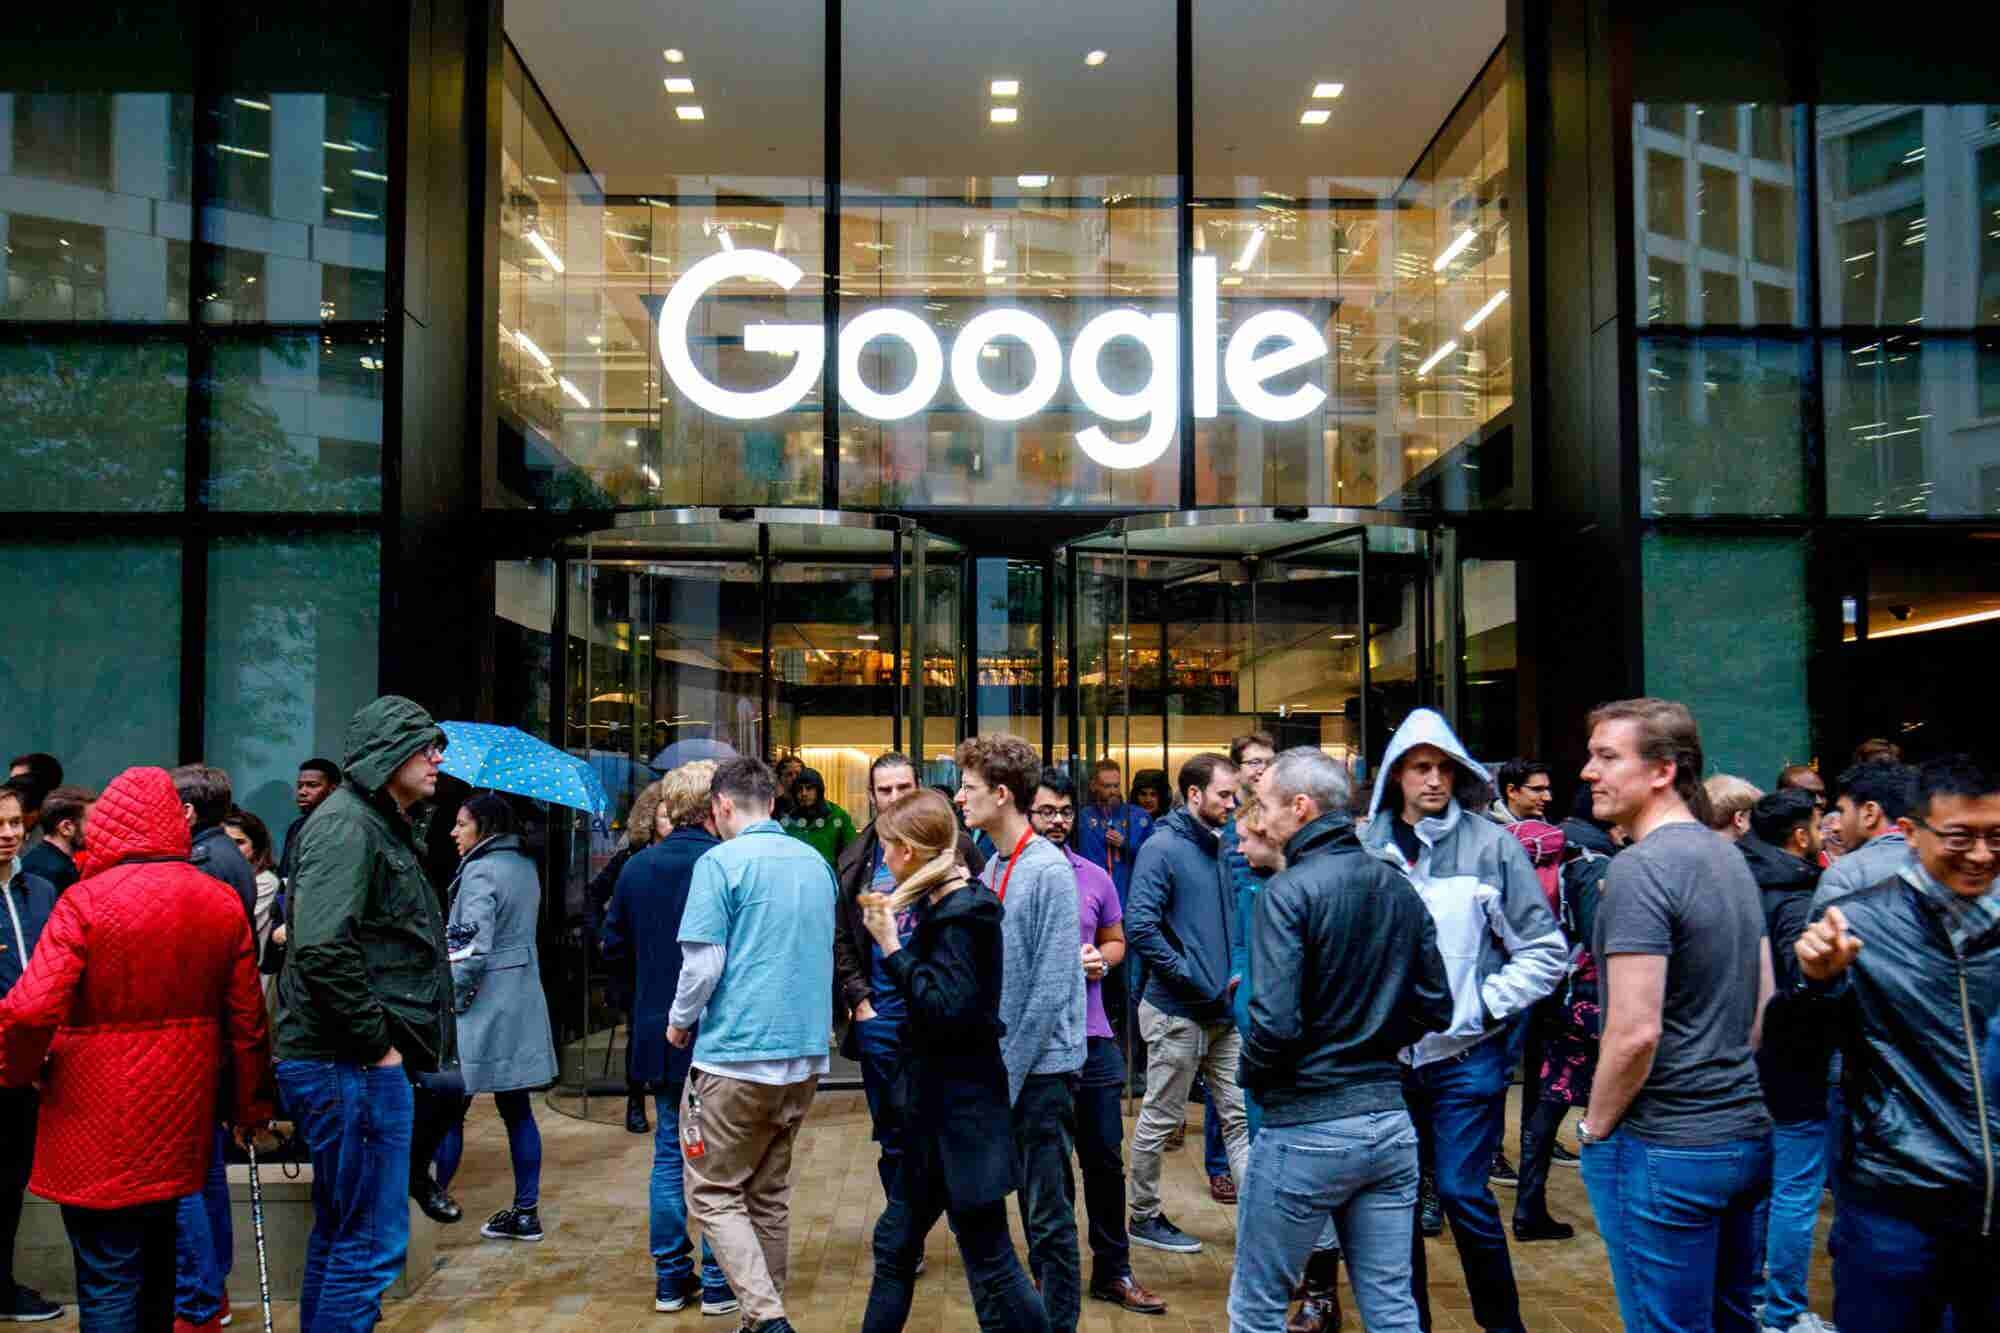 More Than 1,500 Google Workers to Stage Walkout Over Sexual Misconduct Handling